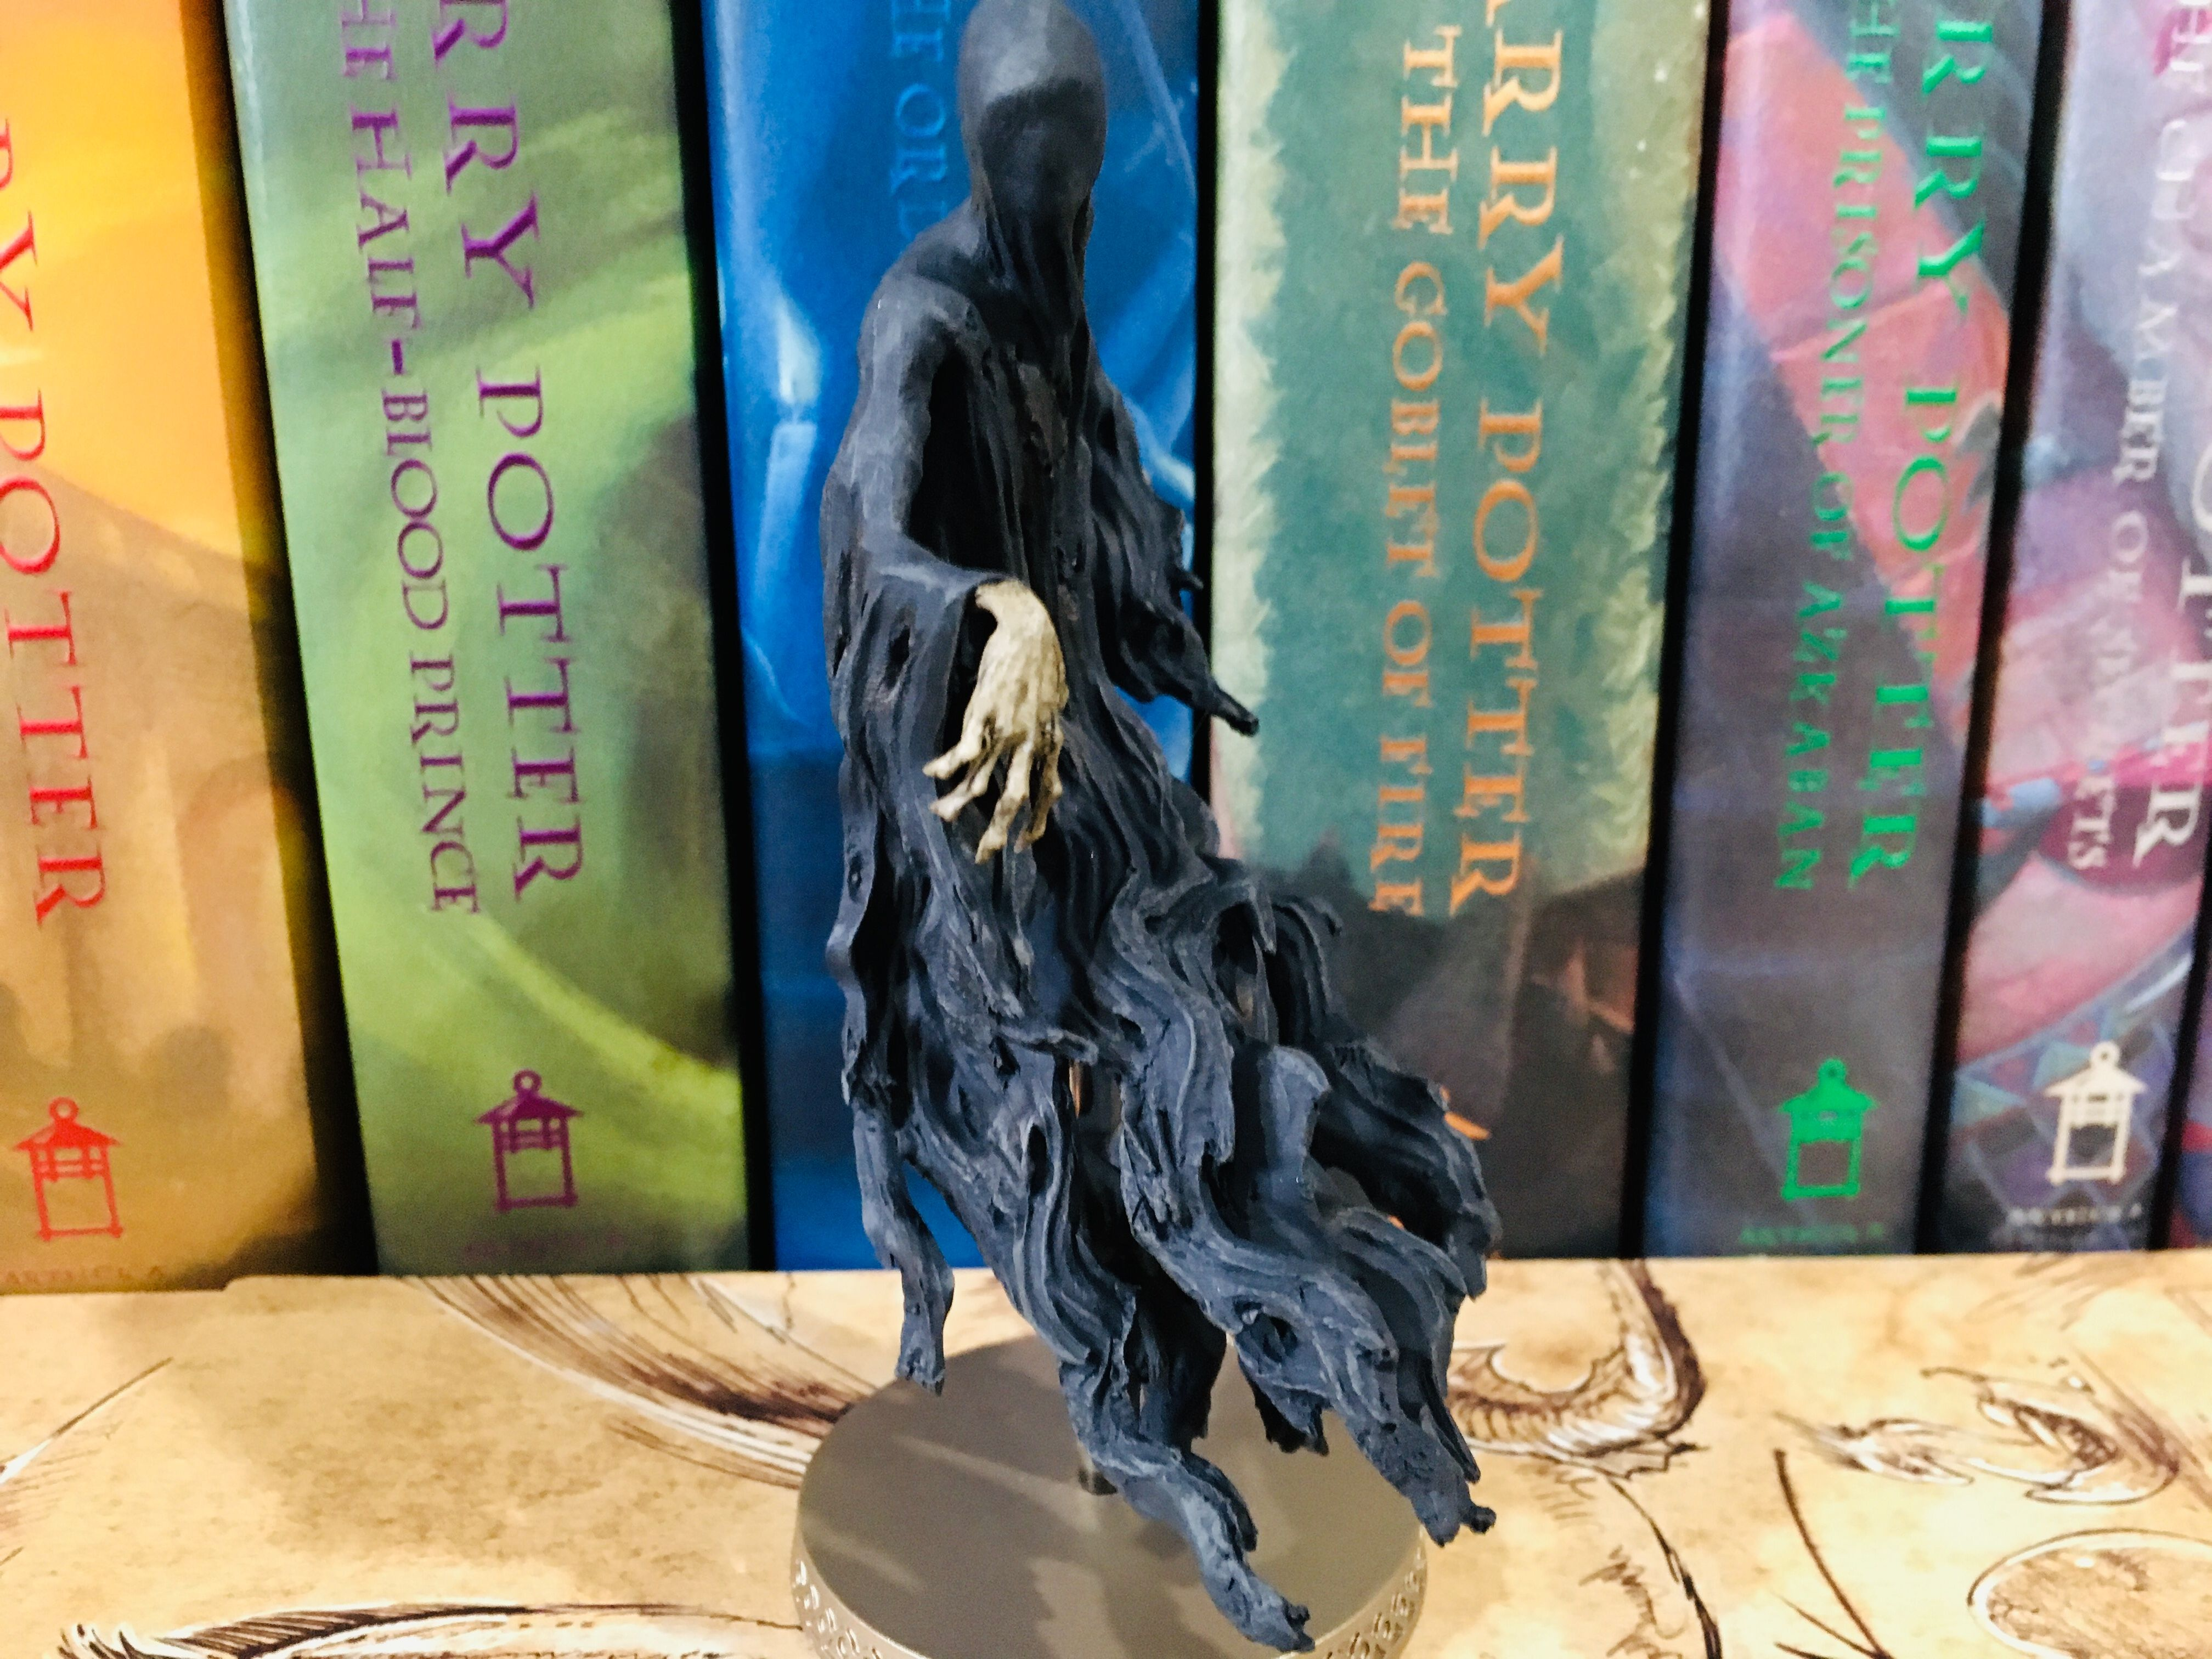 From the side, one can observe the detail in the Dementor's withered hand.